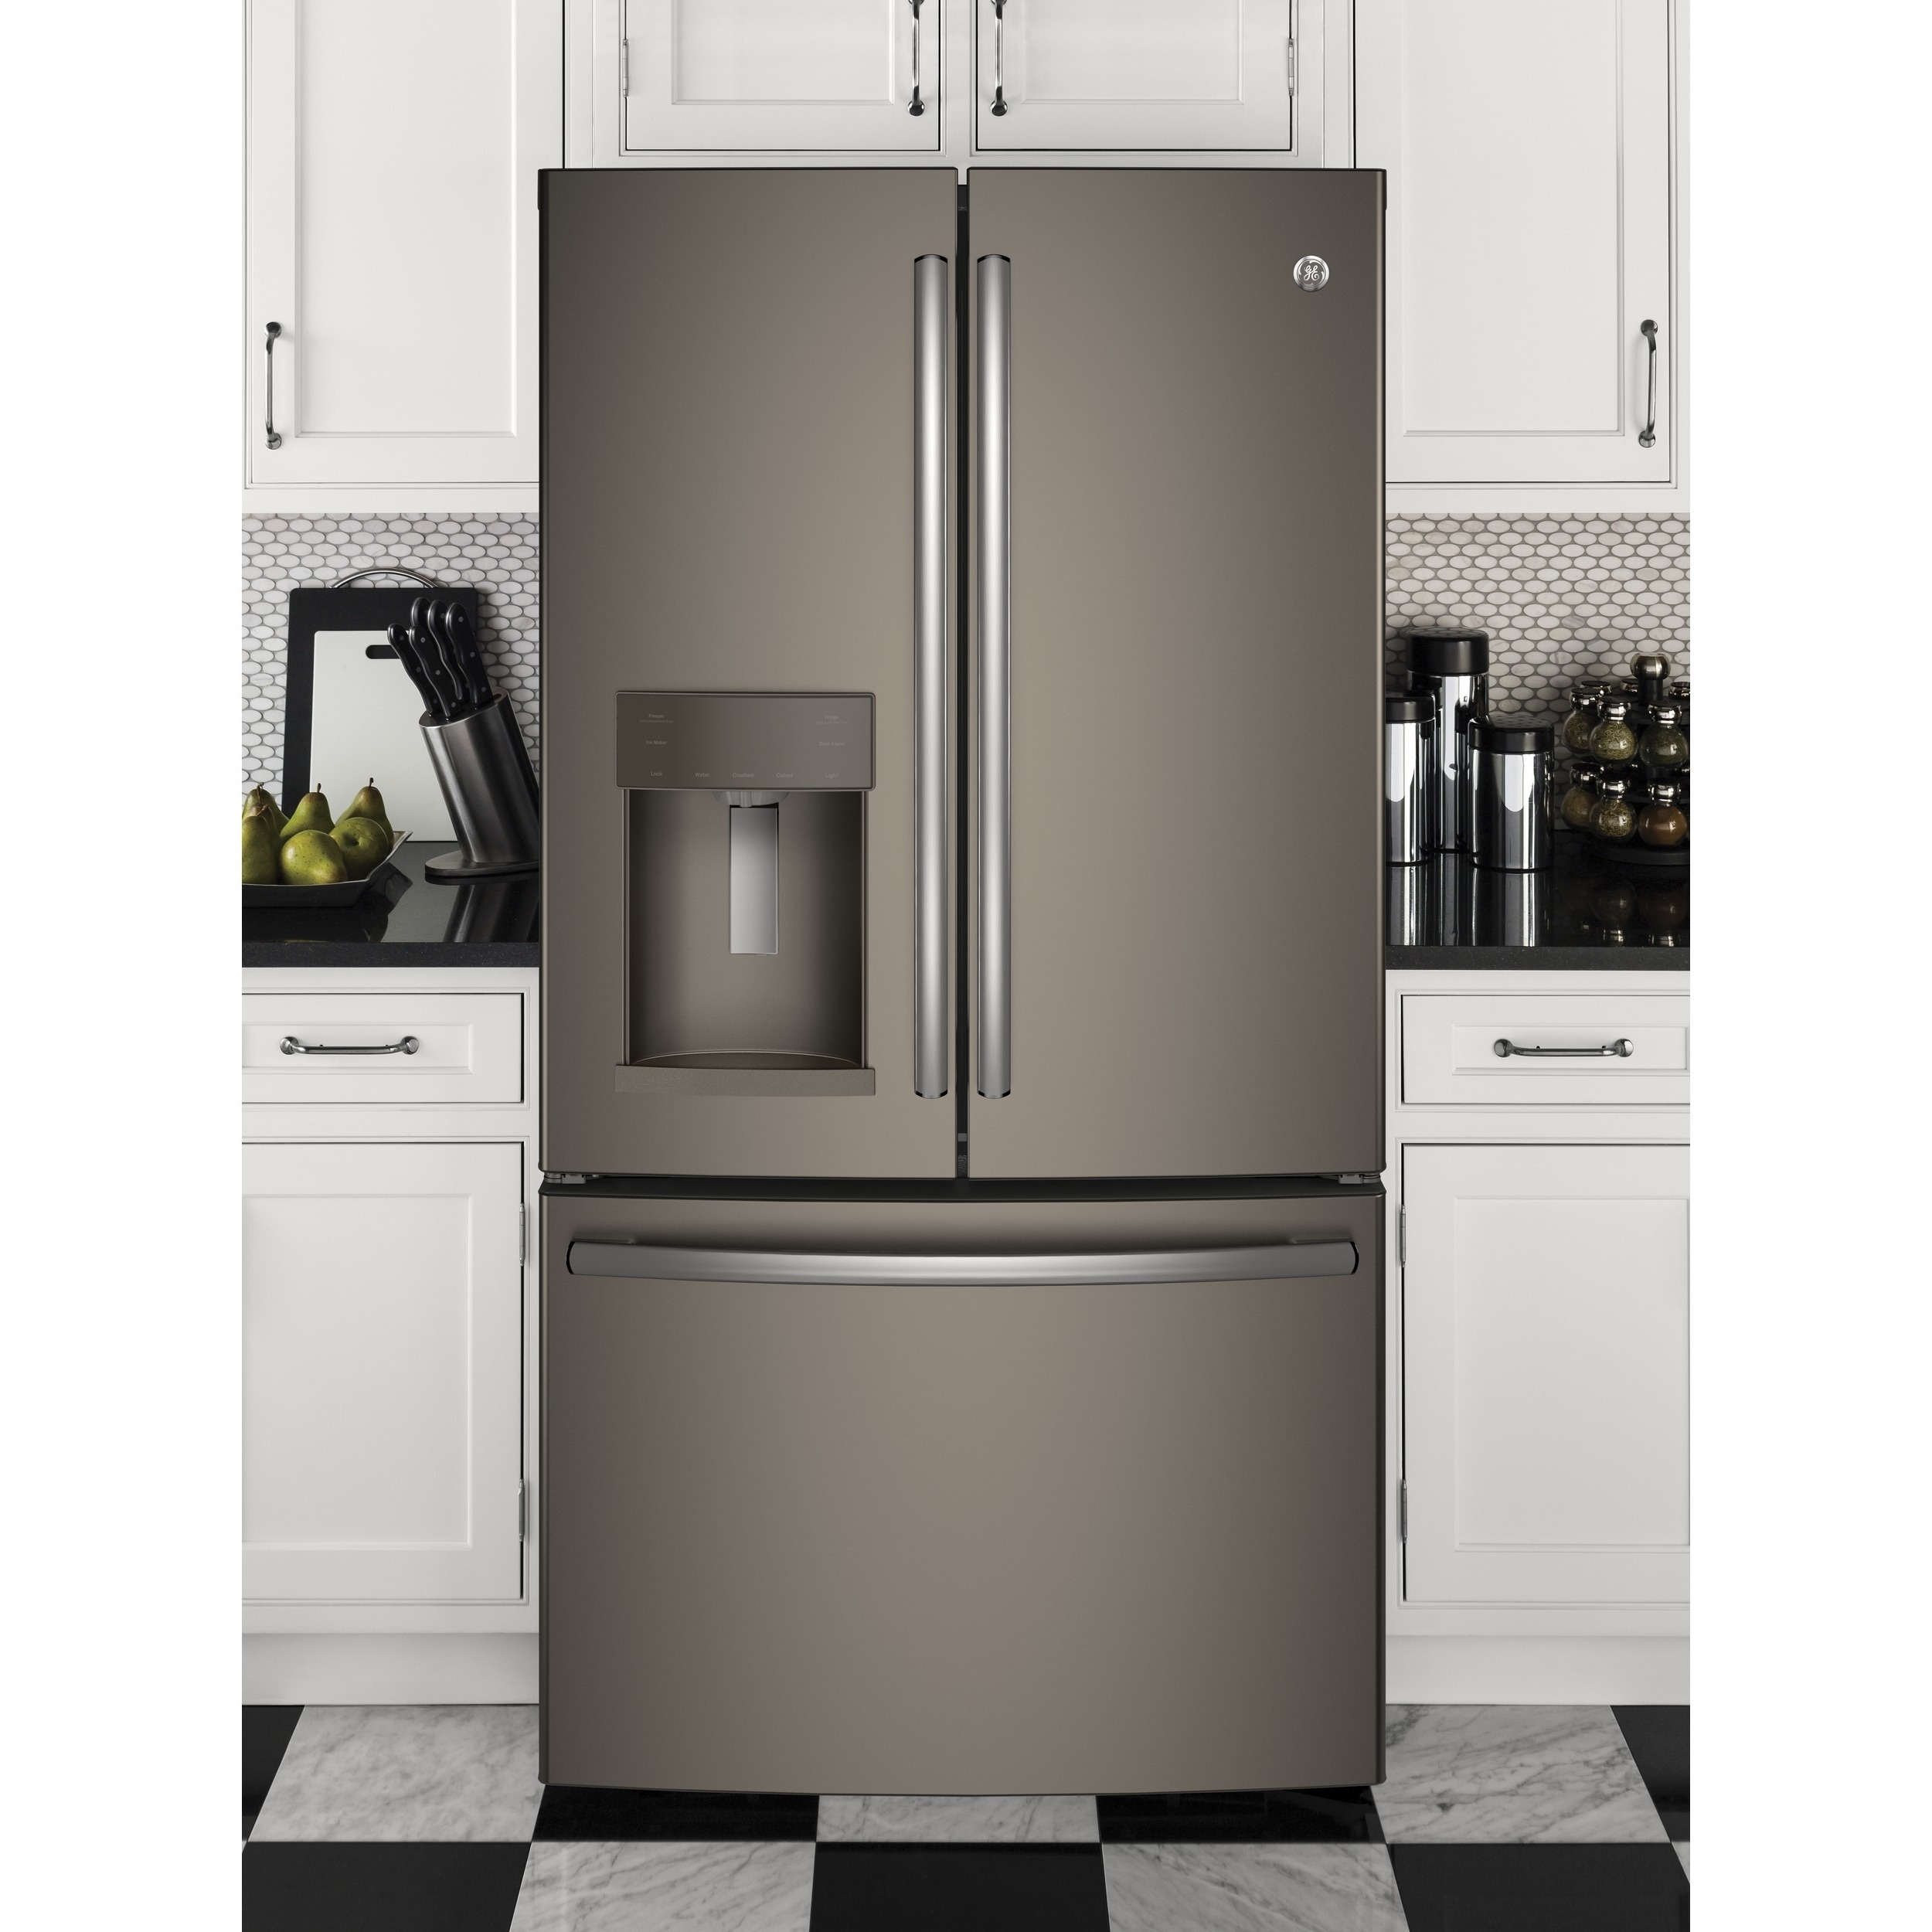 GE Appliances Energy Star 27.8 Cubic Foot French Door Refrigerator slate